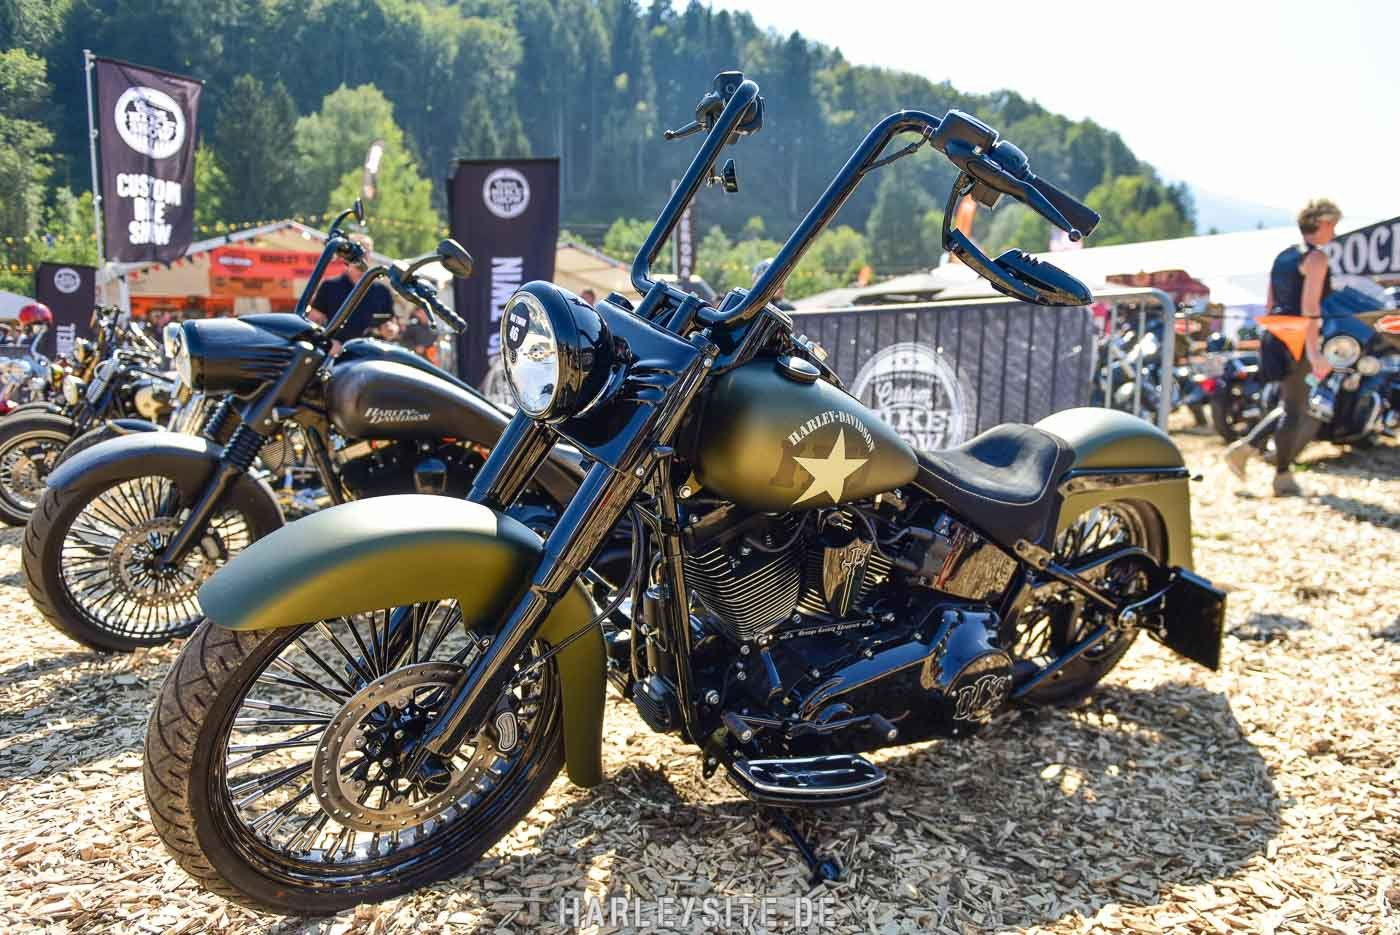 European-Bike-Week-37